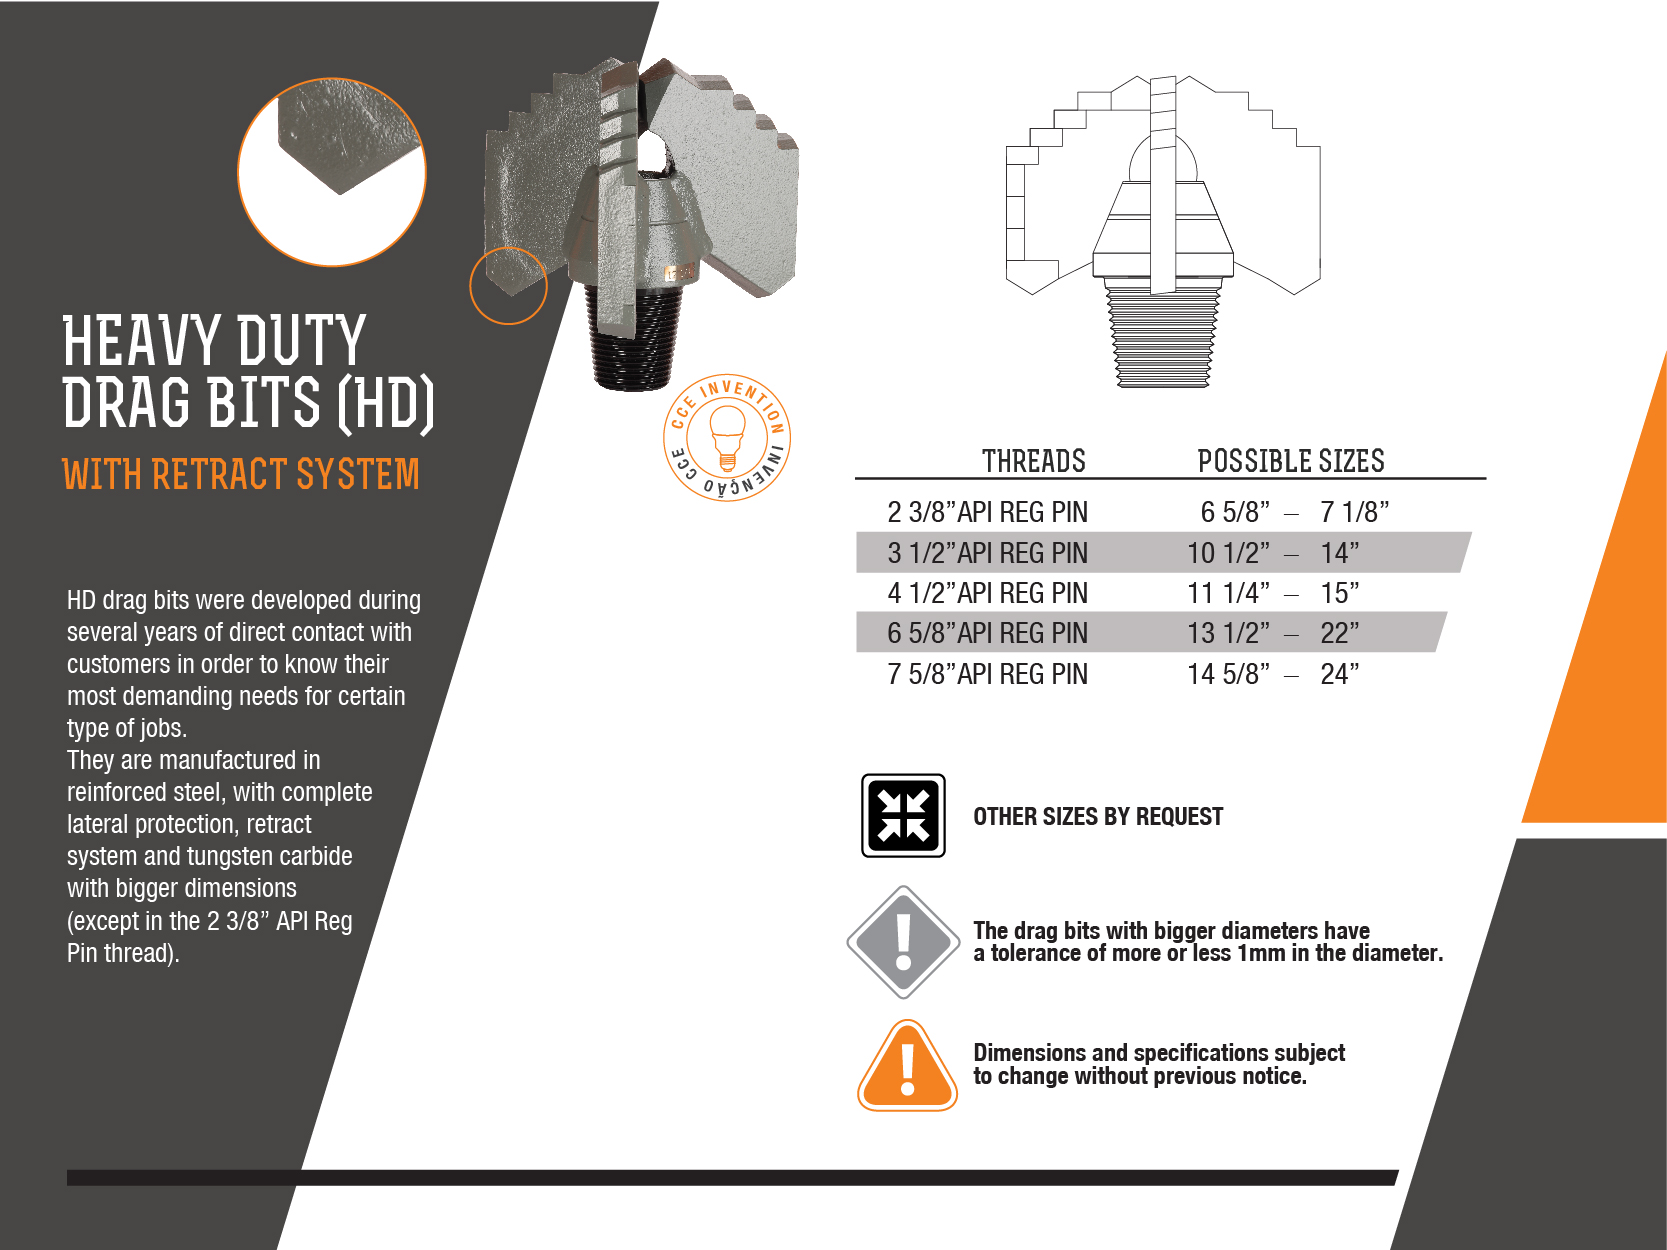 Heavy Duty Drag Bits (HD) with retract system